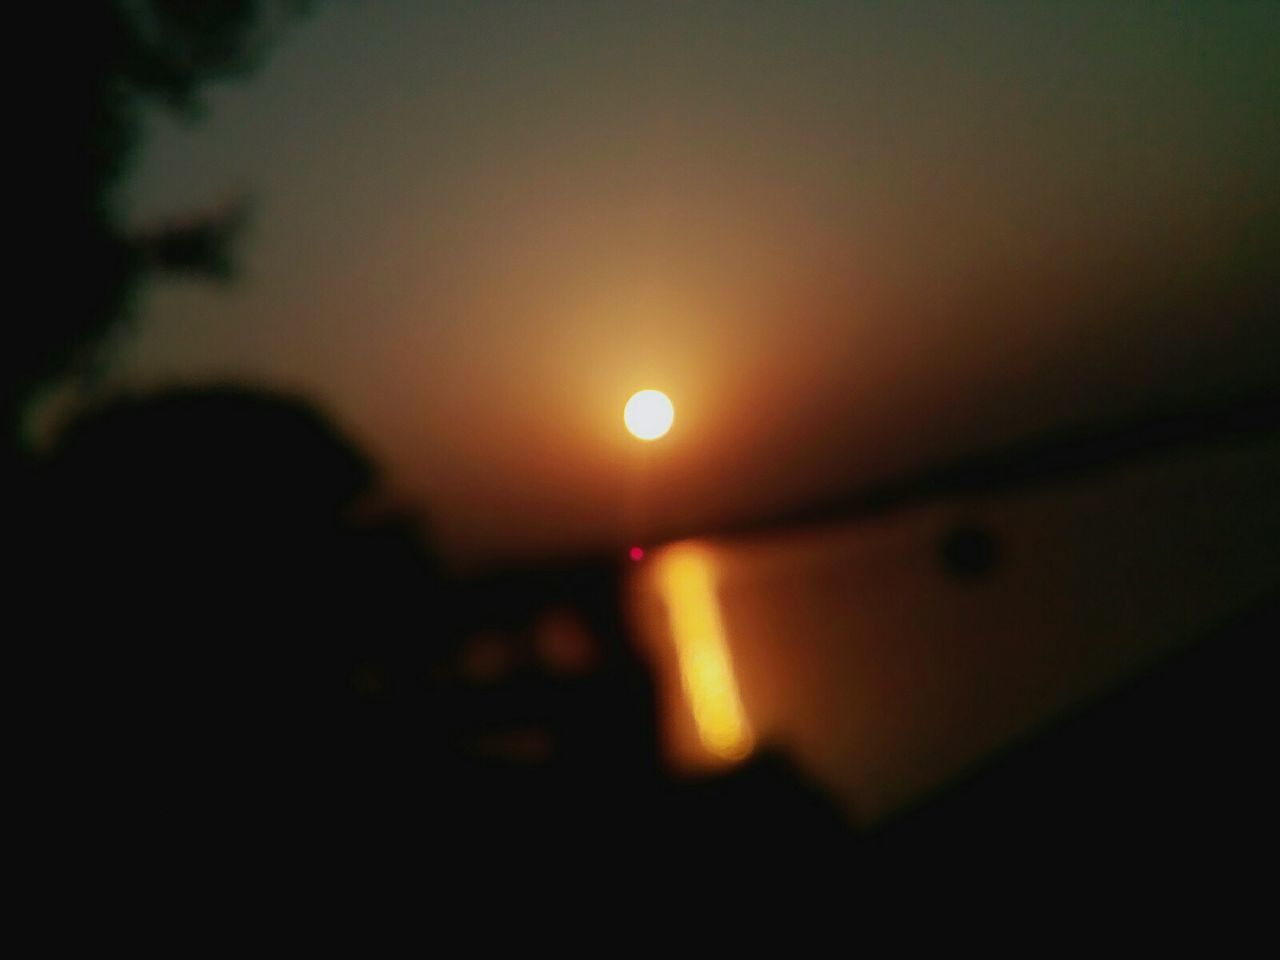 nature, sunset, sun, beauty in nature, sky, silhouette, outdoors, scenics, real people, moon, solar eclipse, close-up, astronomy, crescent